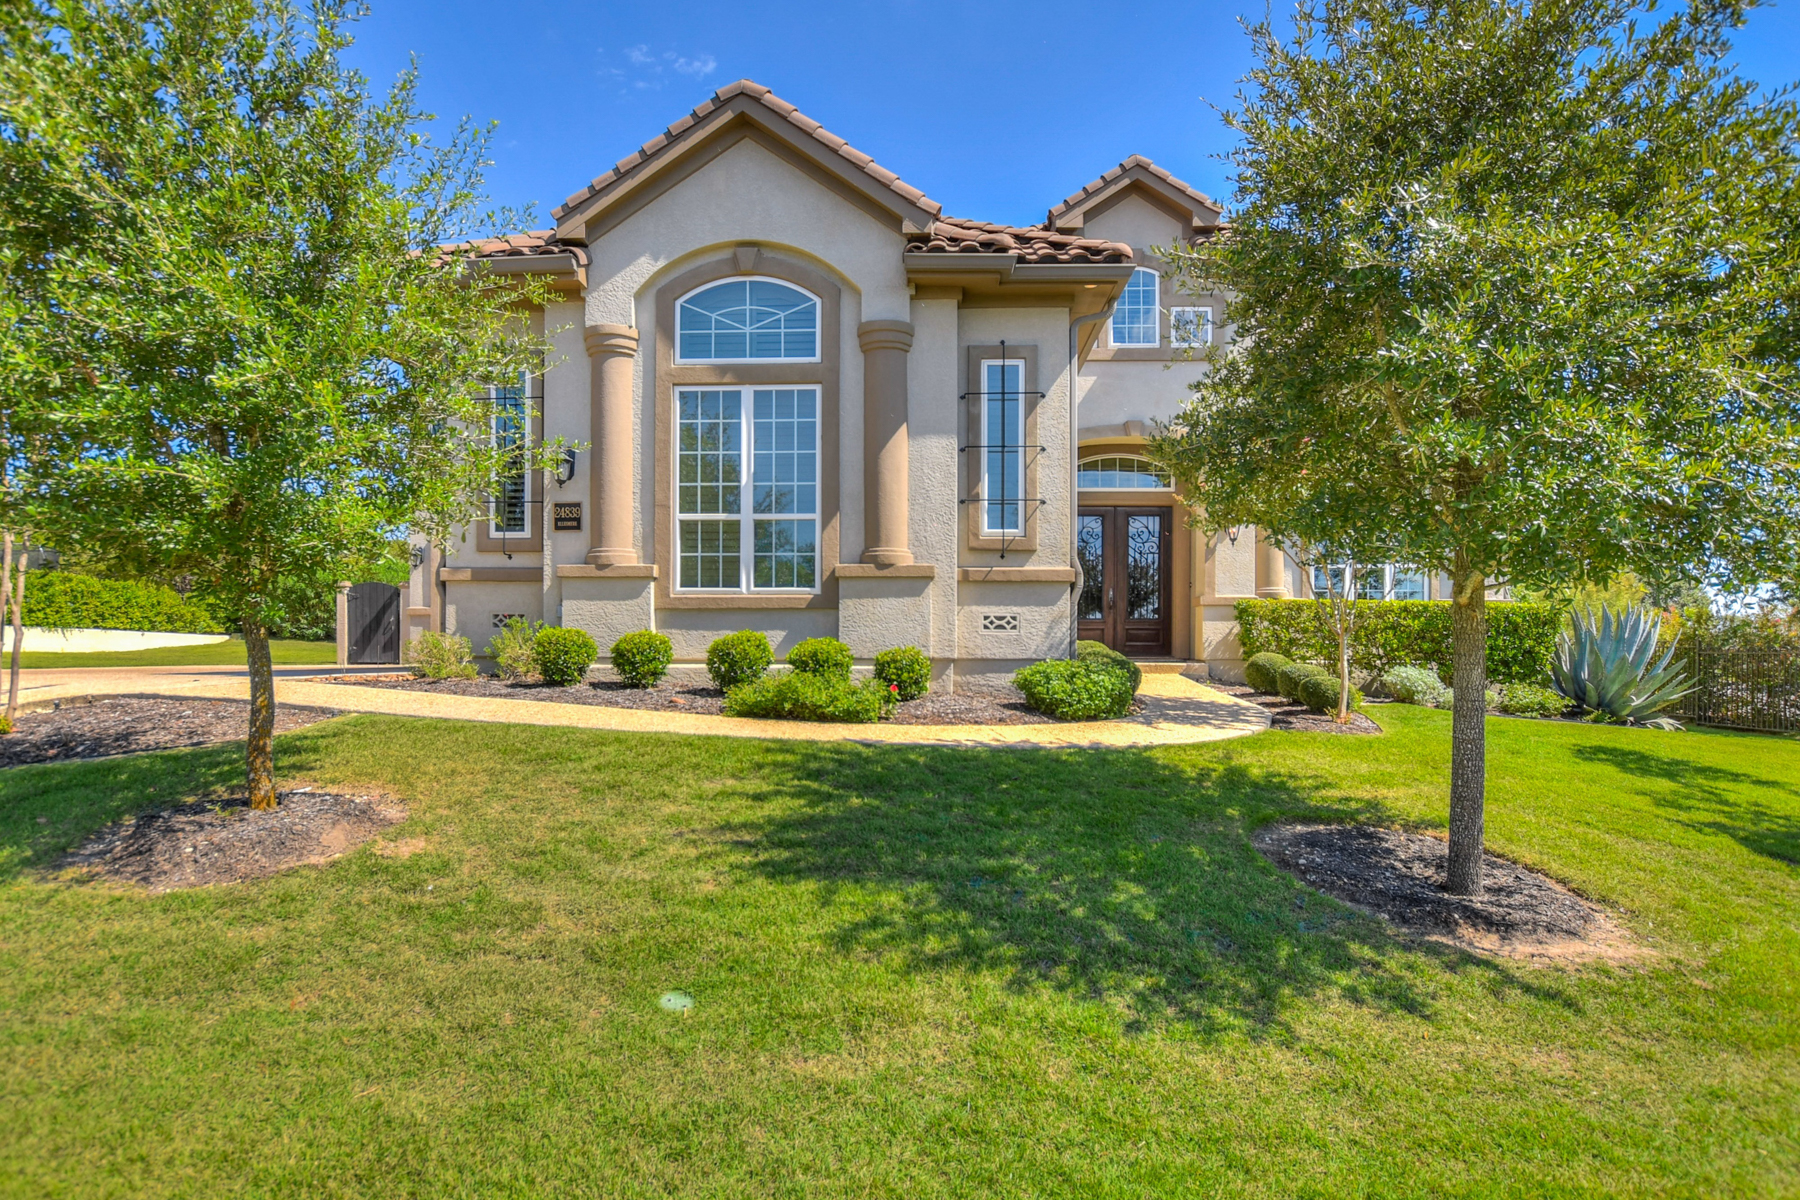 Single Family Home for Sale at Award Winning Gem in The Dominion 24839 Ellesmere San Antonio, Texas 78257 United States